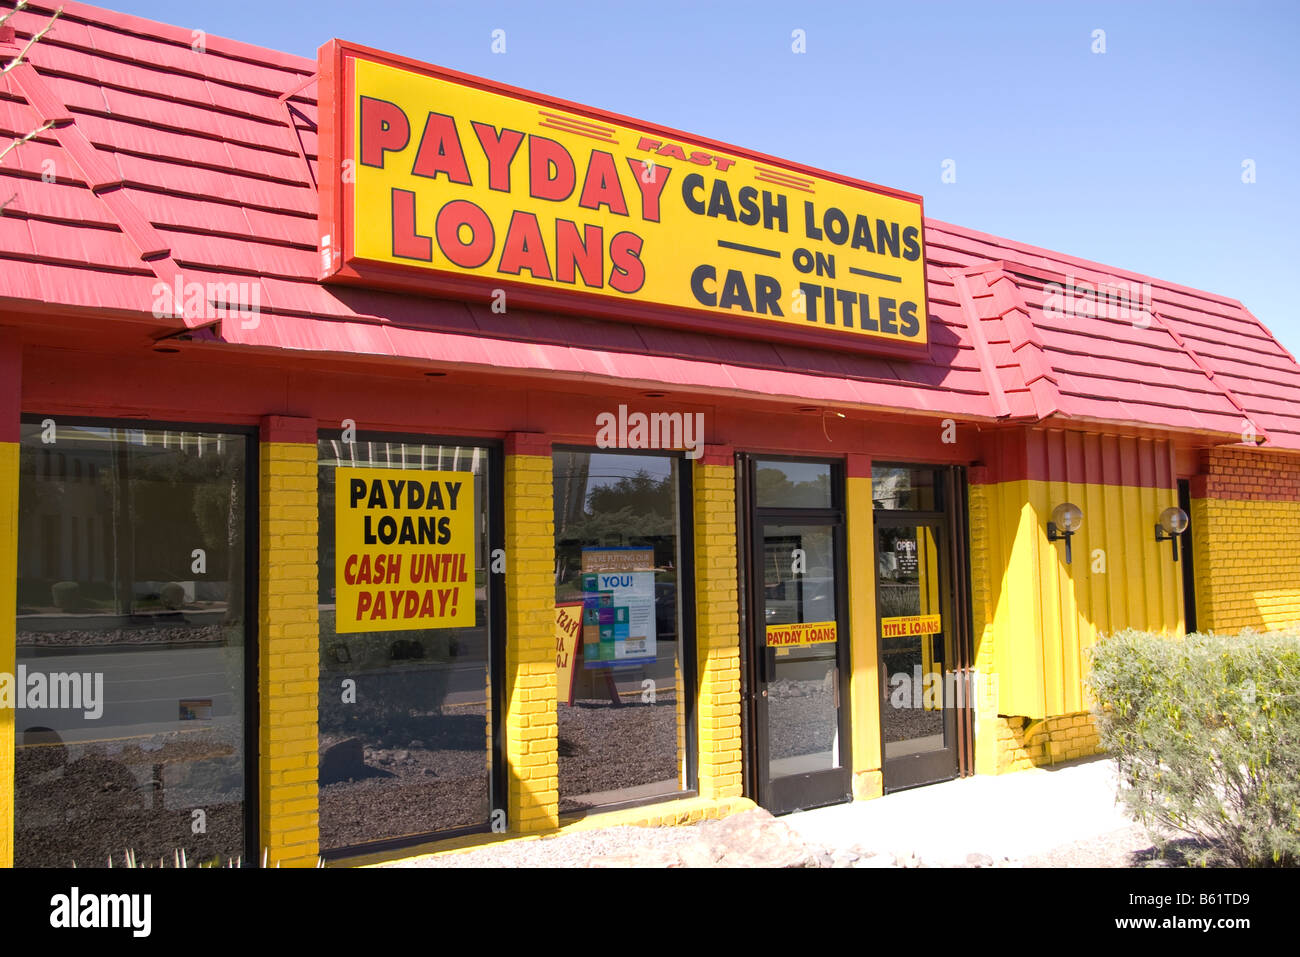 Jacksonville payday loan cash advance image 6